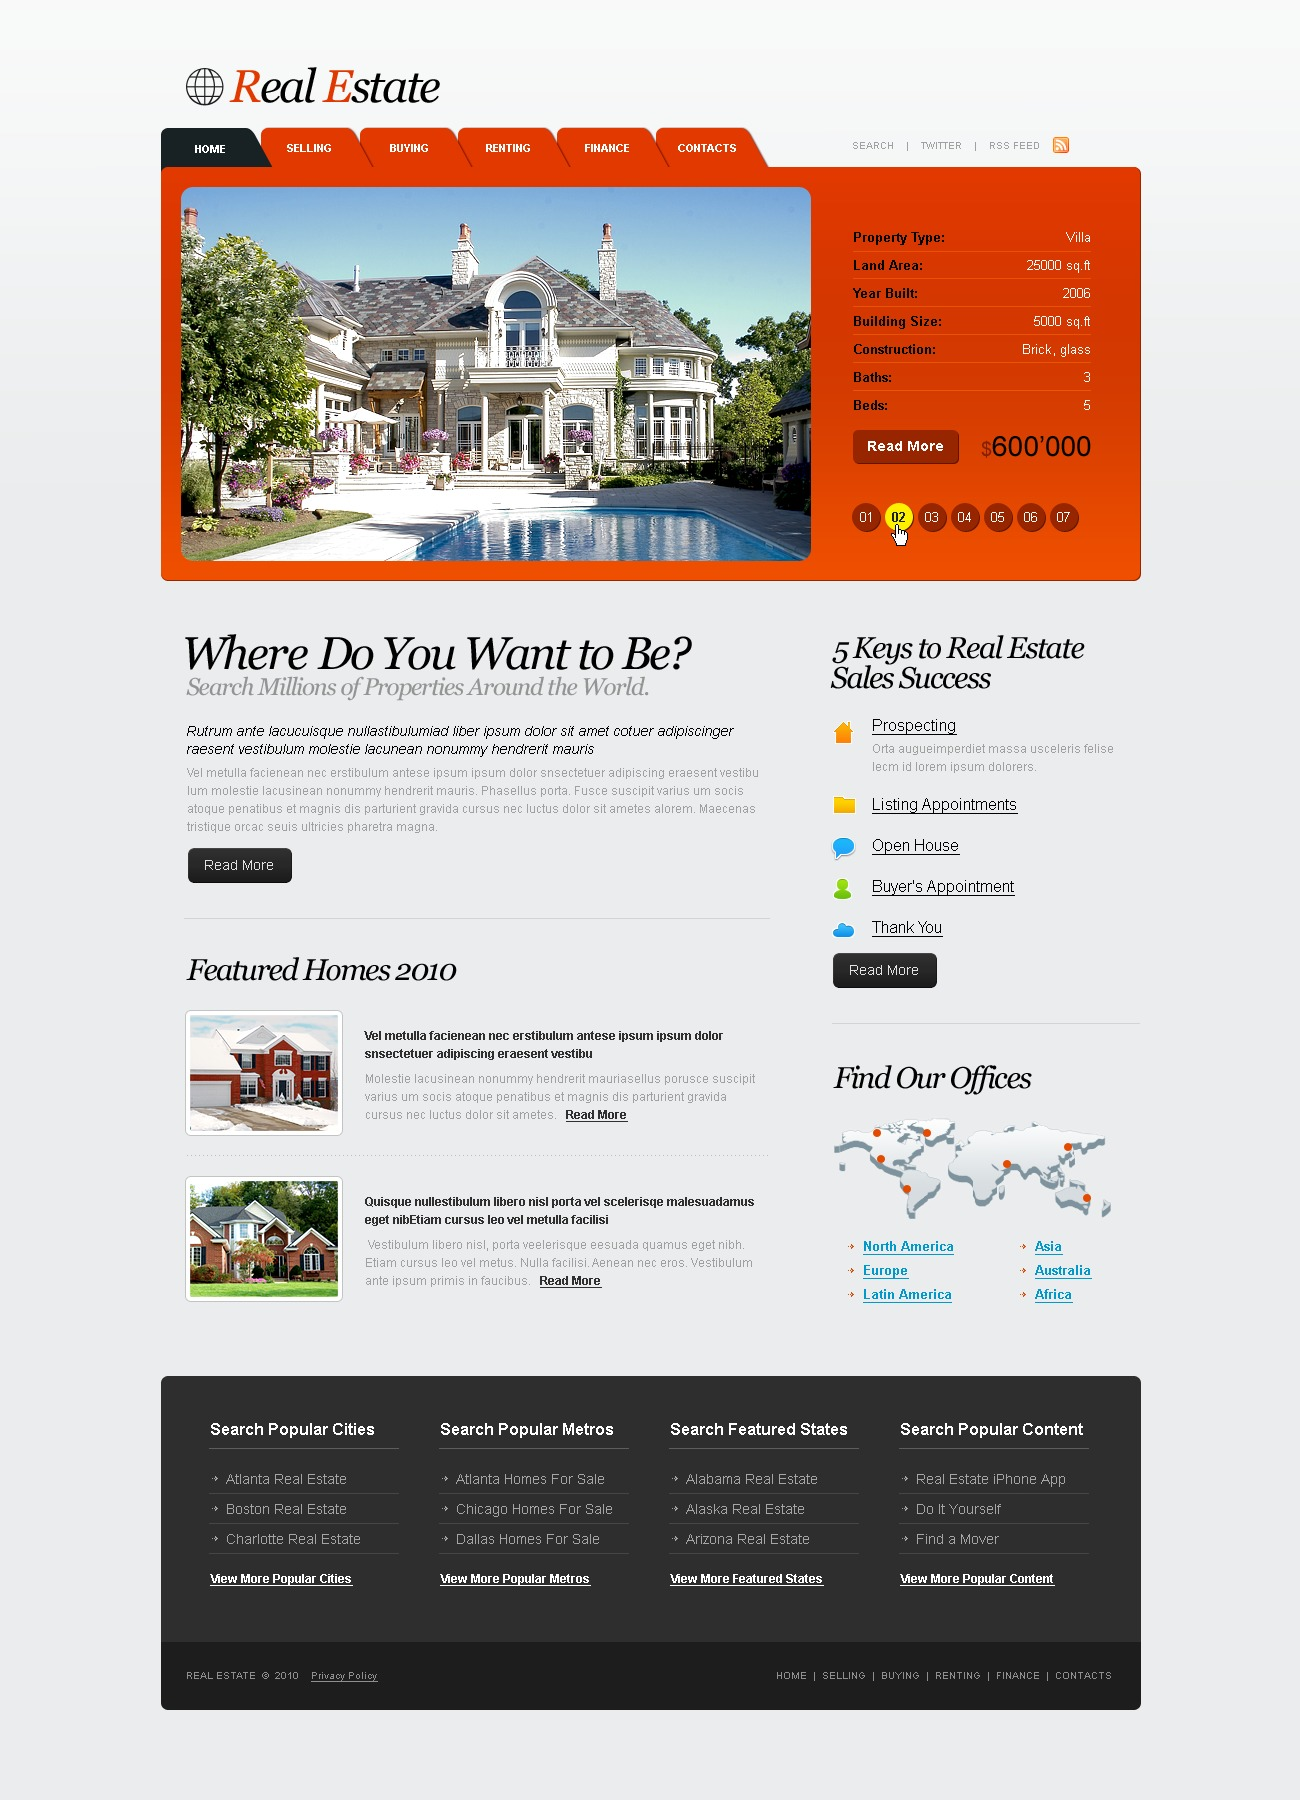 The Real Estate Agency PSD Design 54274, one of the best PSD templates of its kind (real estate, flash 8, wide), also known as real estate agency PSD template, services PSD template, house PSD template, home PSD template, apartment PSD template, buildings PSD template, finance PSD template, loan PSD template, sales PSD template, rentals PSD template, management PSD template, search PSD template, team PSD template, money PSD template, foreclosure PSD template, estimator PSD template, investment PSD template, development PSD template, constructions PSD template, architecture PSD template, engineering PSD template, apartment PSD template, sale PSD template, rent PSD template, architecture PSD template, broker PSD template, lots and related with real estate agency, services, house, home, apartment, buildings, finance, loan, sales, rentals, management, search, team, money, foreclosure, estimator, investment, development, constructions, architecture, engineering, apartment, sale, rent, architecture, broker, lots, etc.